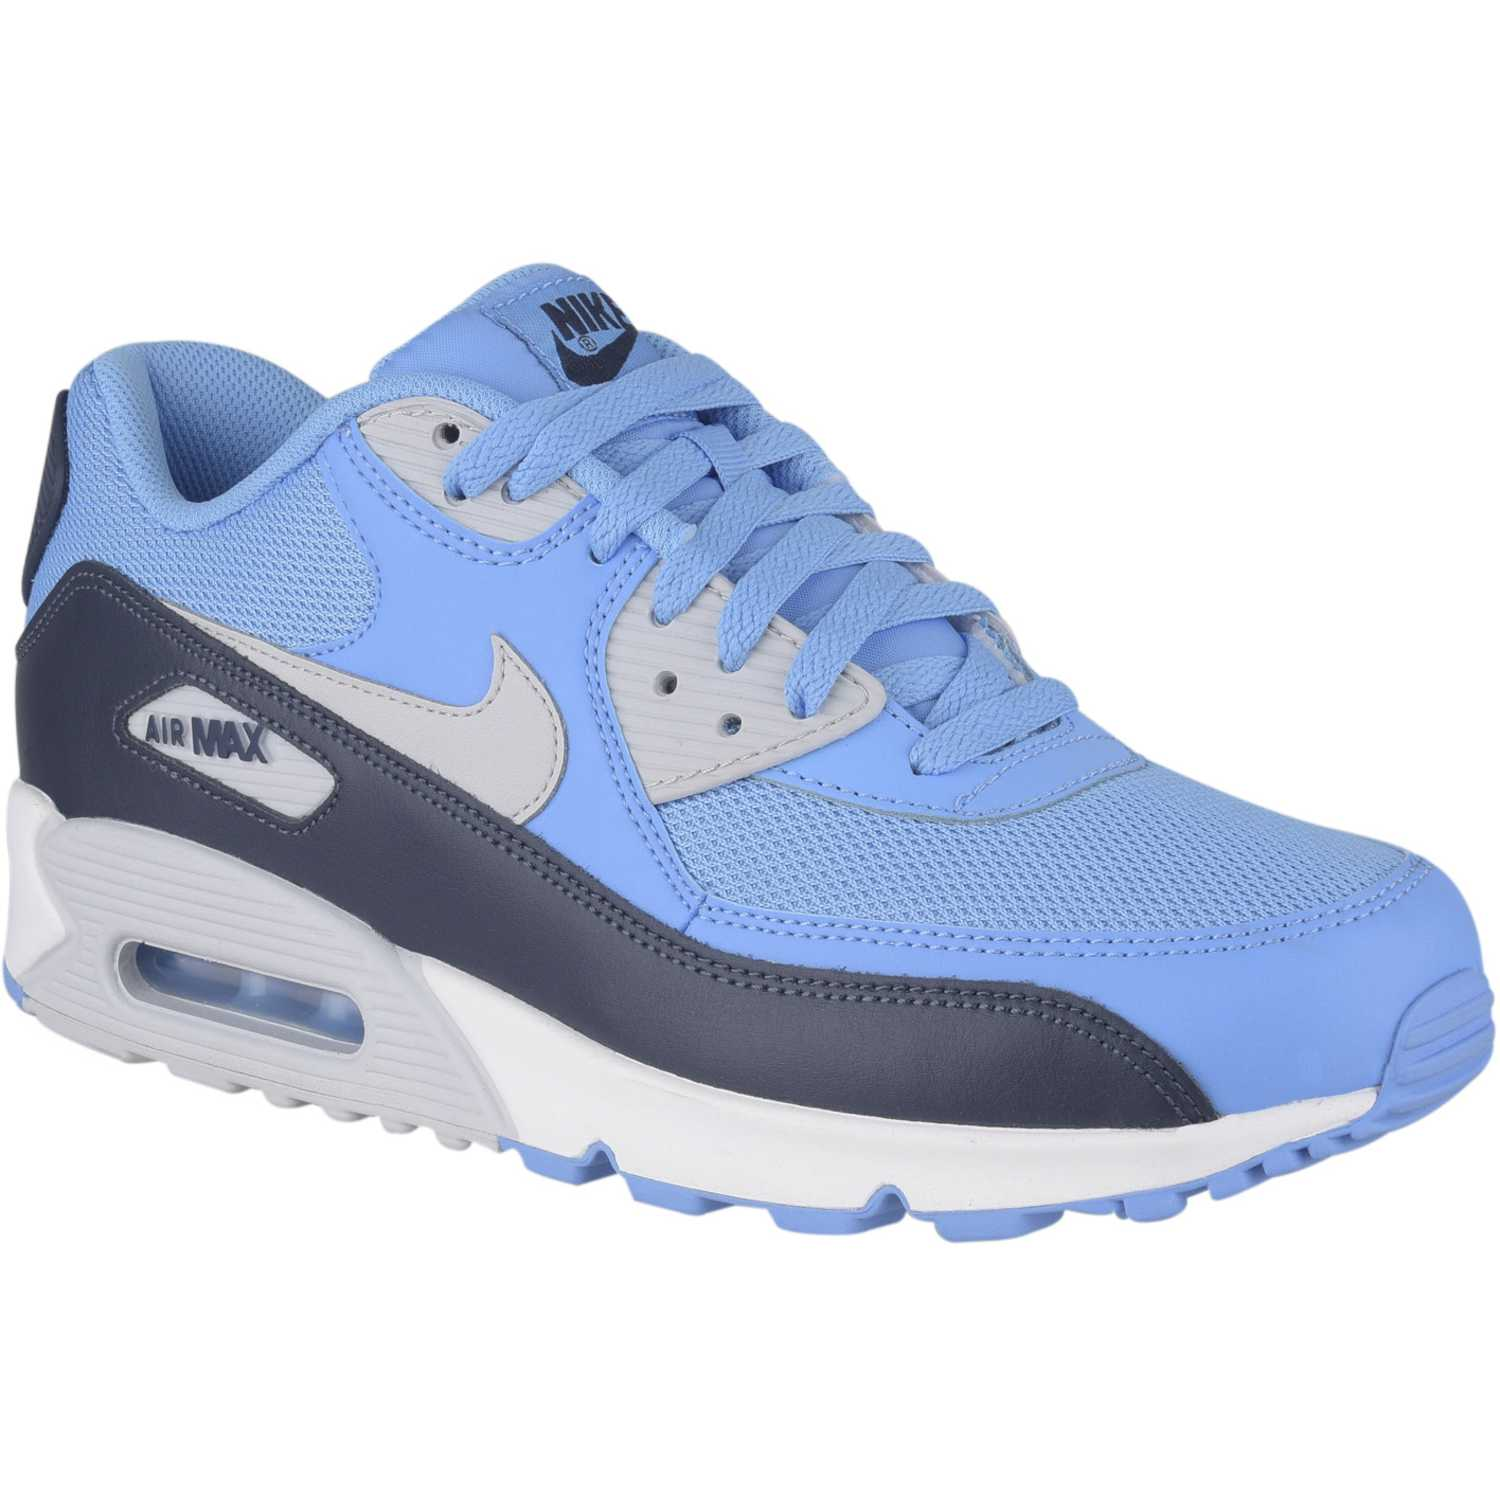 purchase hombres nike air max 90 azul 77048 94866